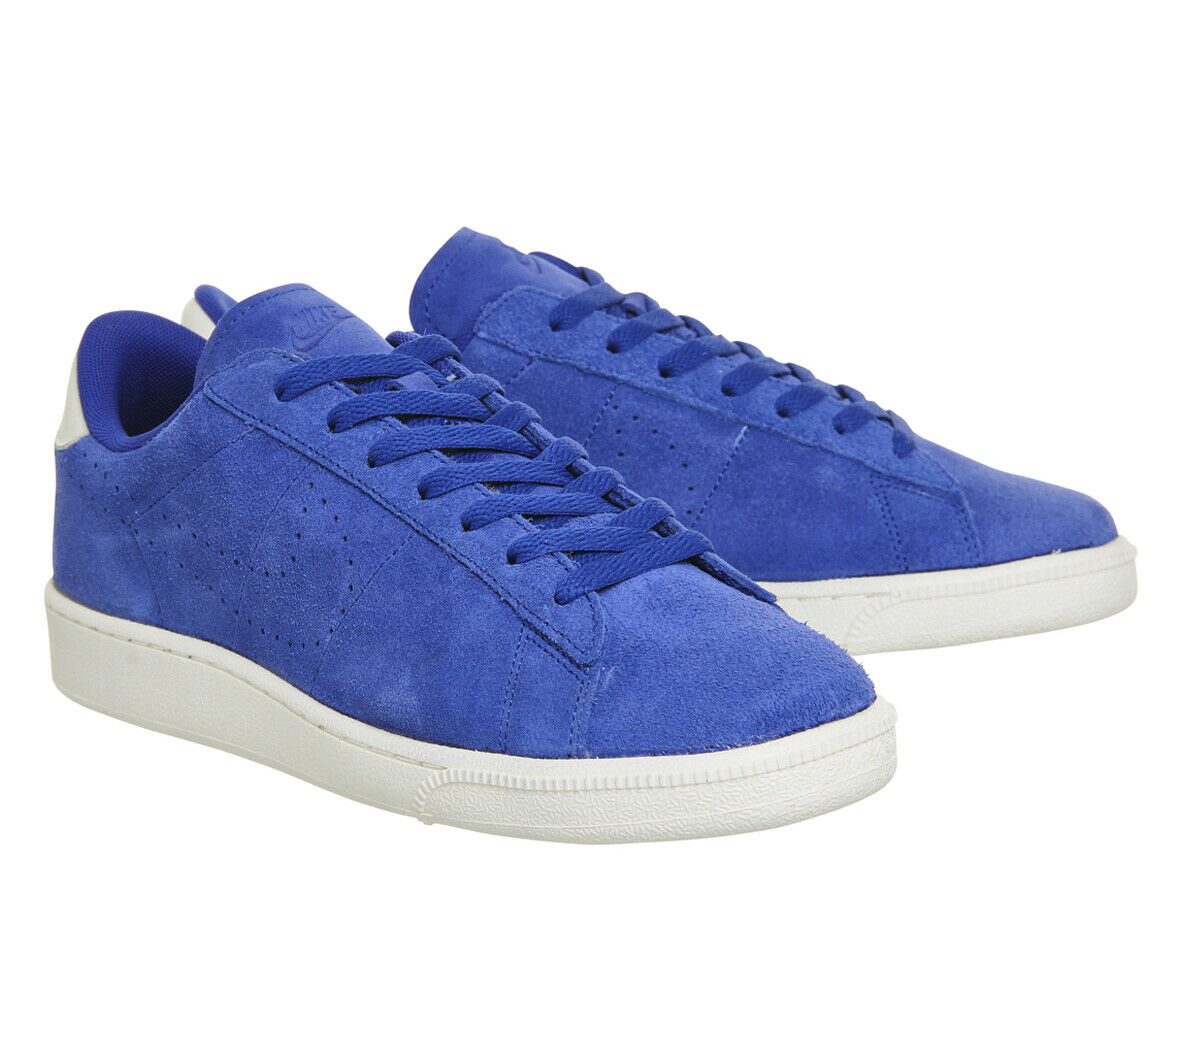 dbf1329e30a Nike 829351 400 Tennis Classic Cs Suede mens Sneakers shoes bluee Size 8.5  nnoiiy2809-Athletic Shoes